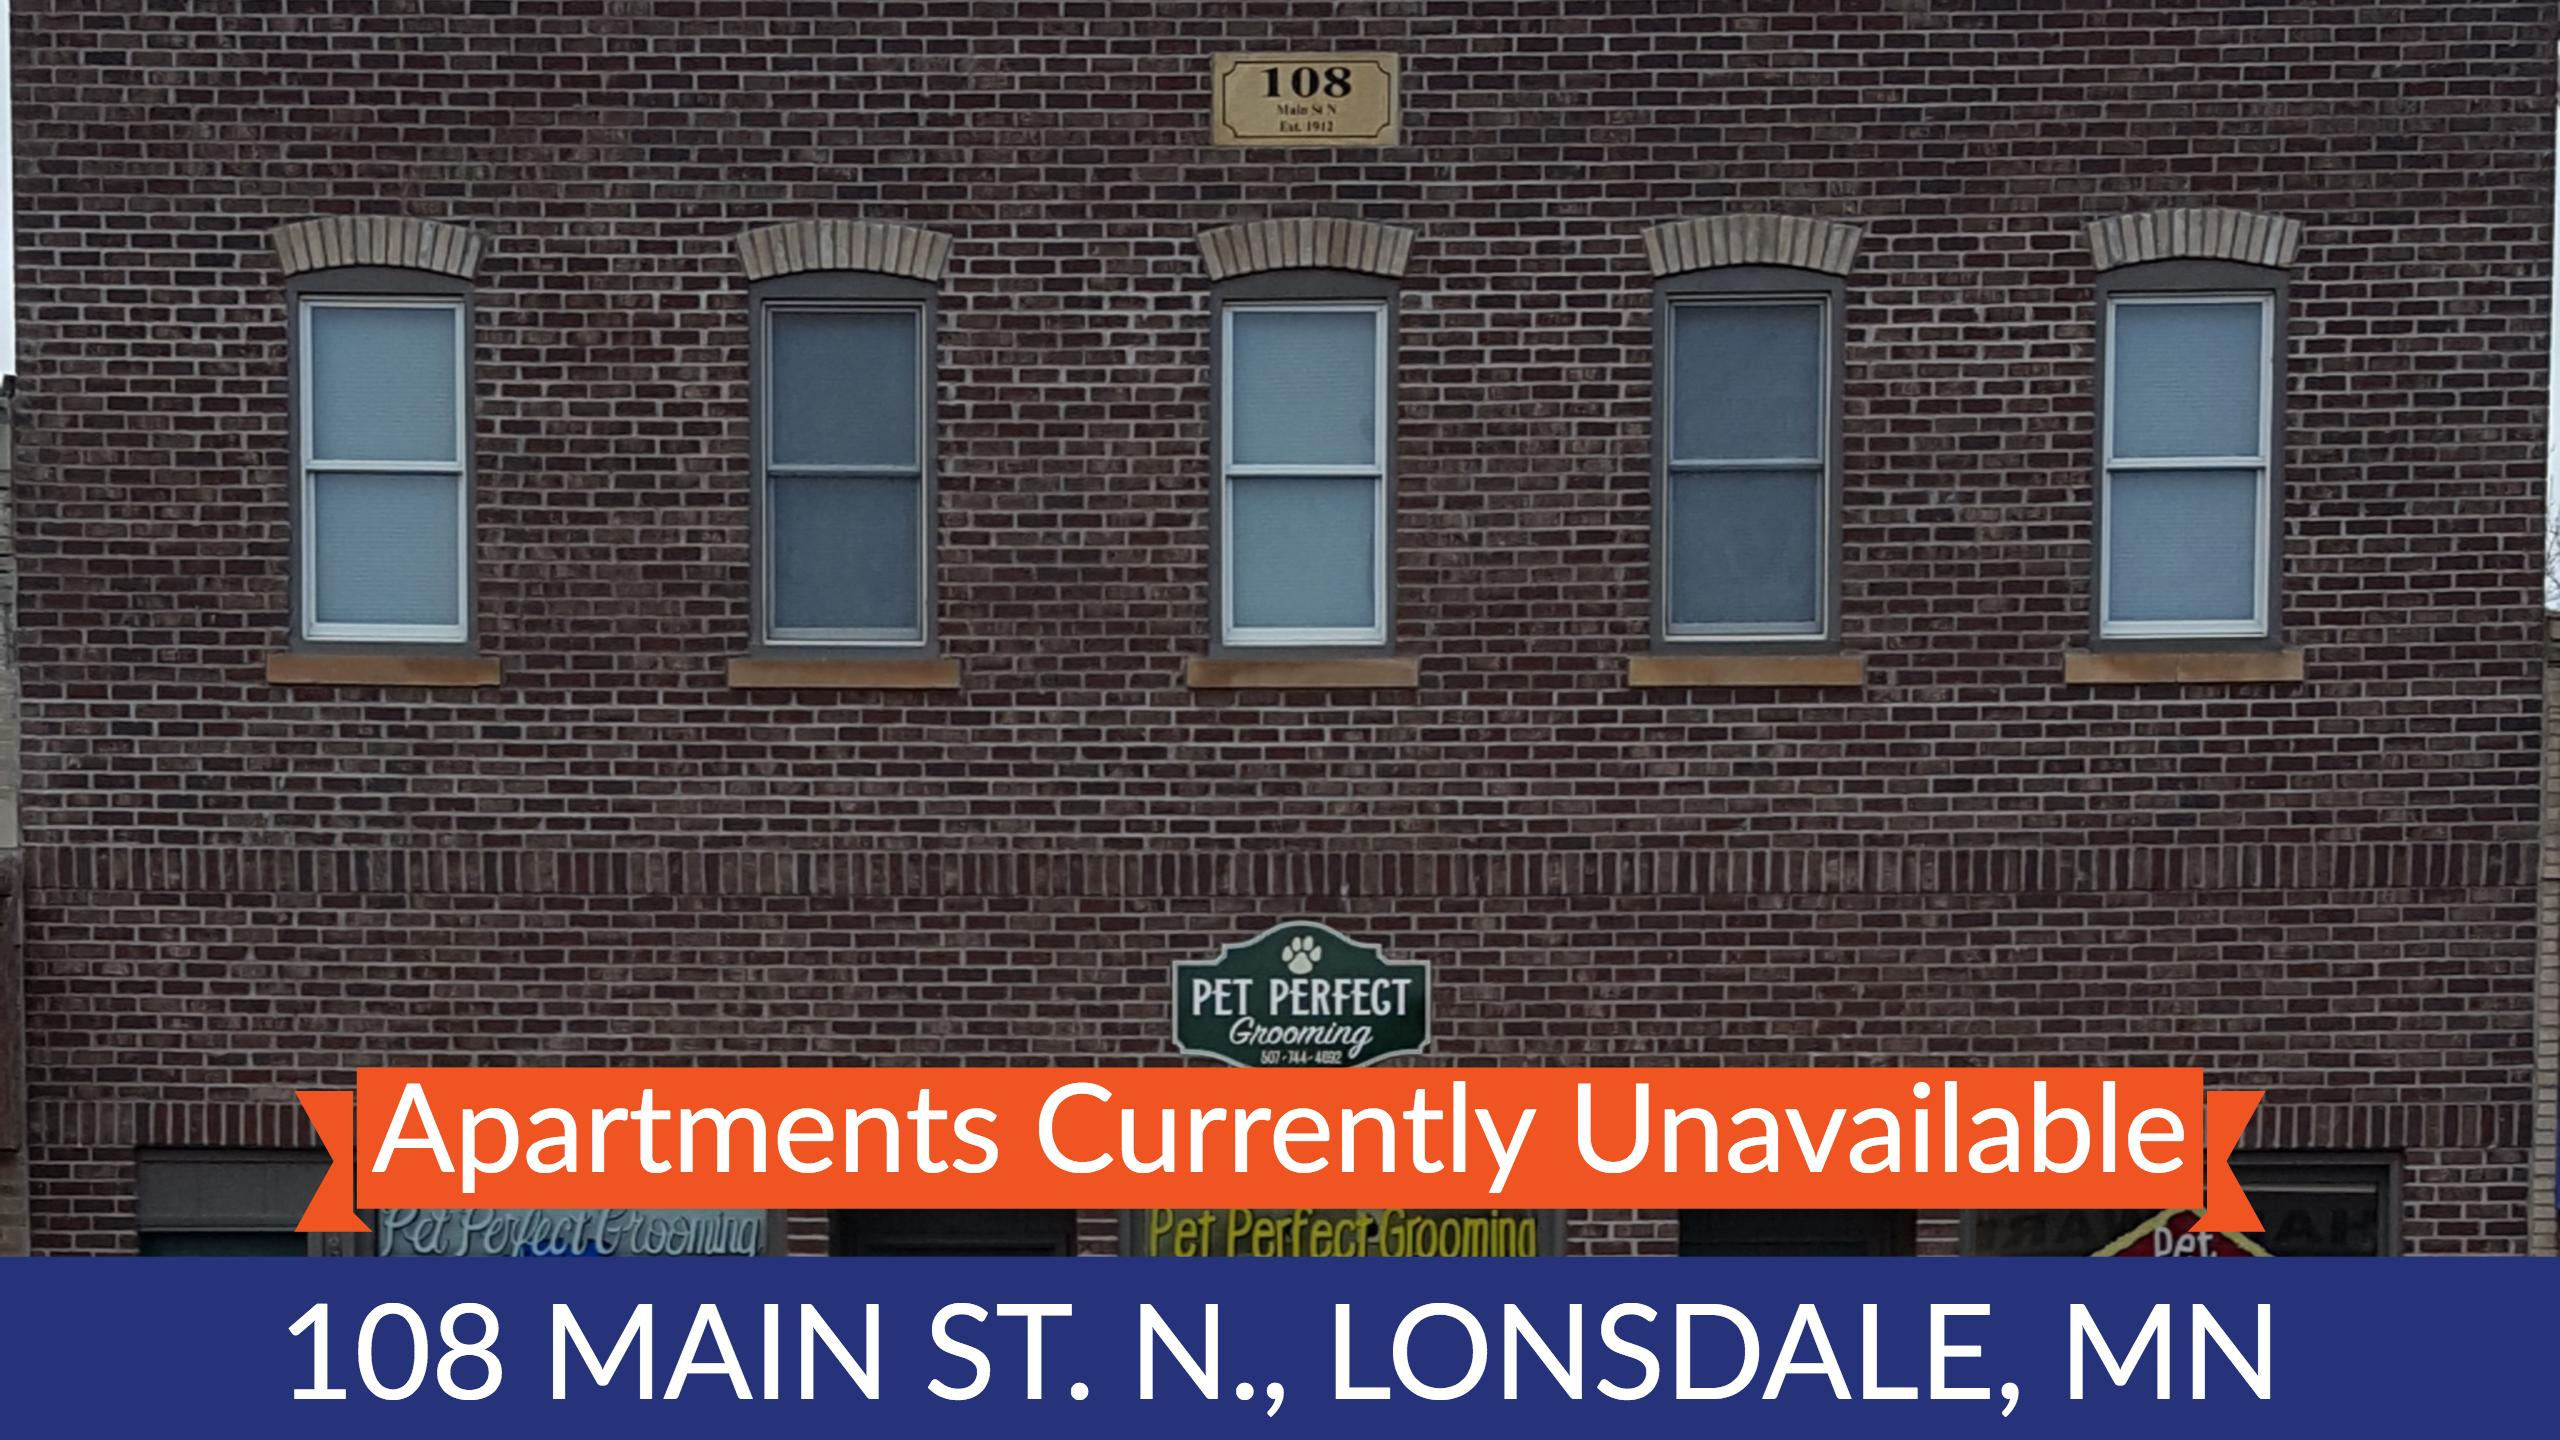 108 Main St. N, Lonsdale, MN